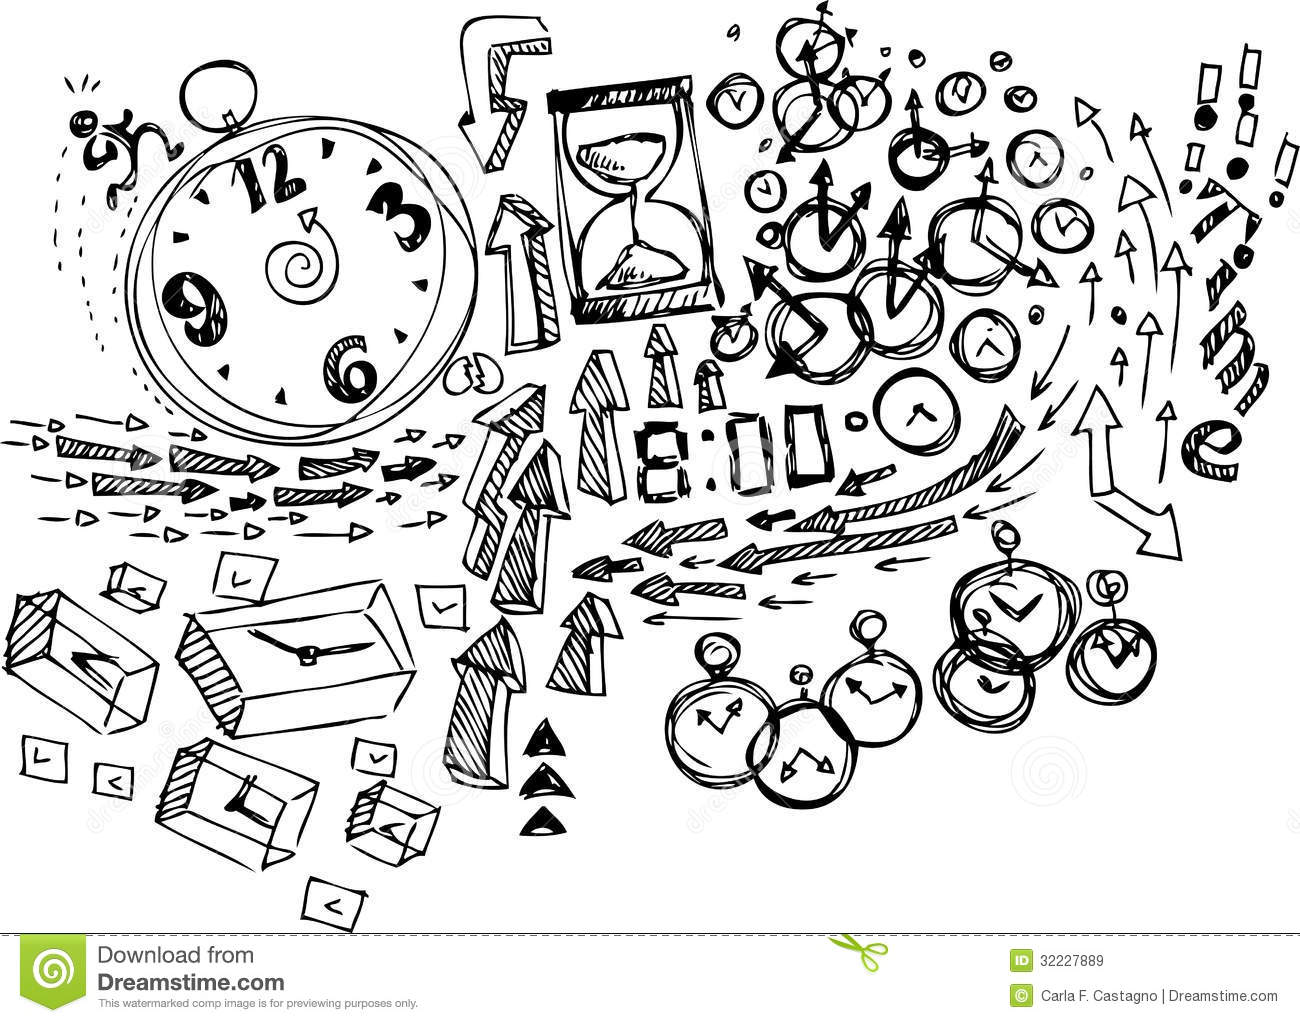 Clocks and arrows. Concept sketchy doodles vector illustration about ...